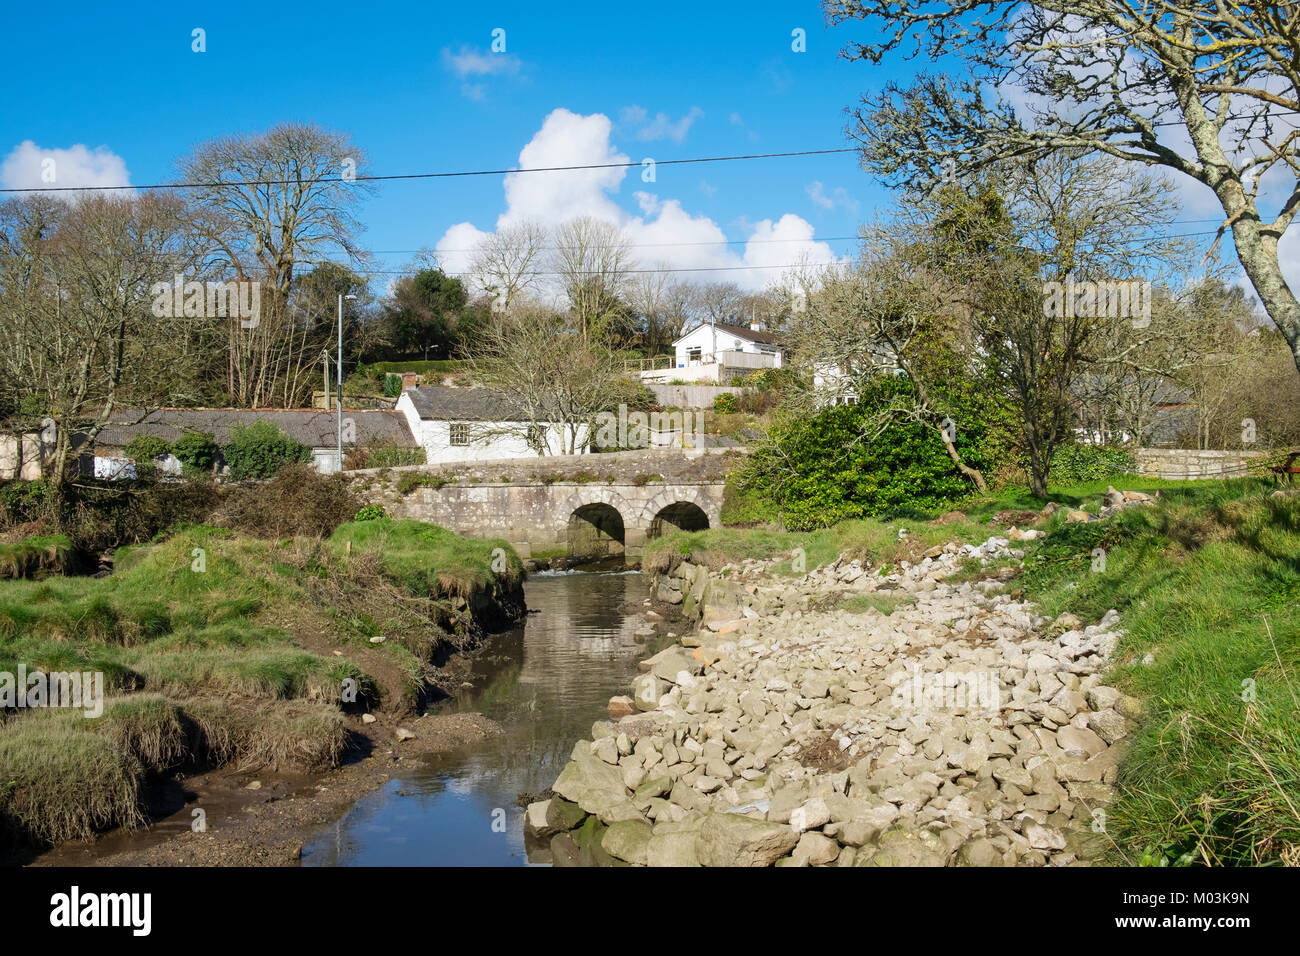 the riverside village of gweek at the head of the helford river near helston in cornwall, england, britain, uk. Stock Photo